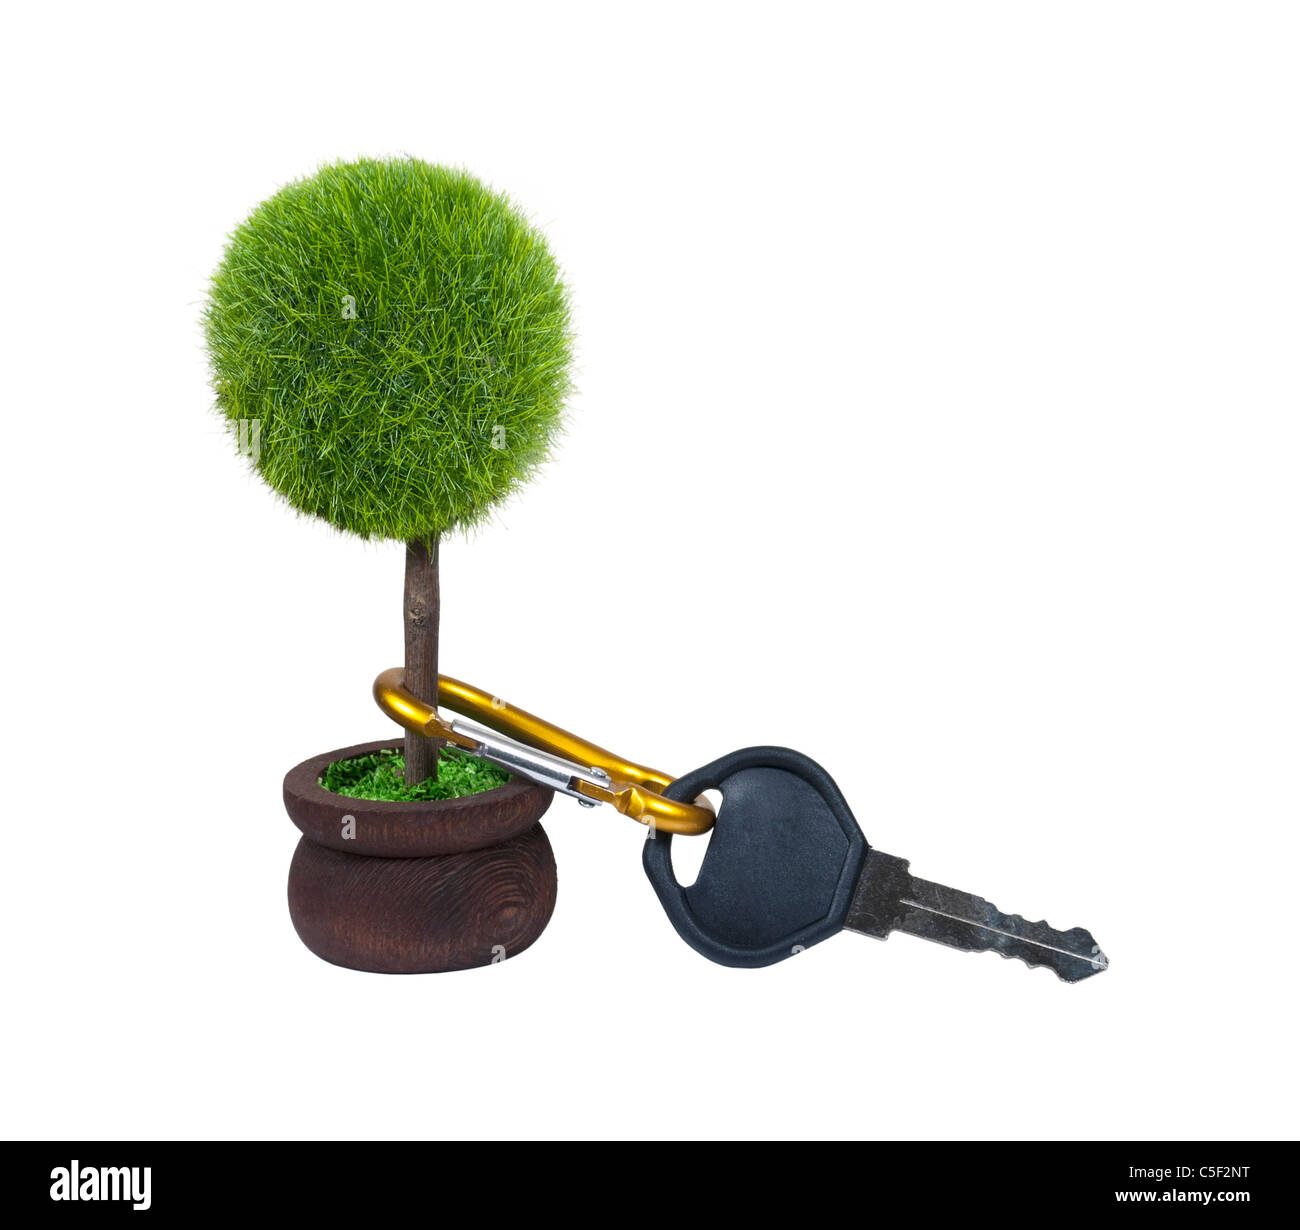 Efficient transportation shown by a car key attached to a potted tree - path included - Stock Image